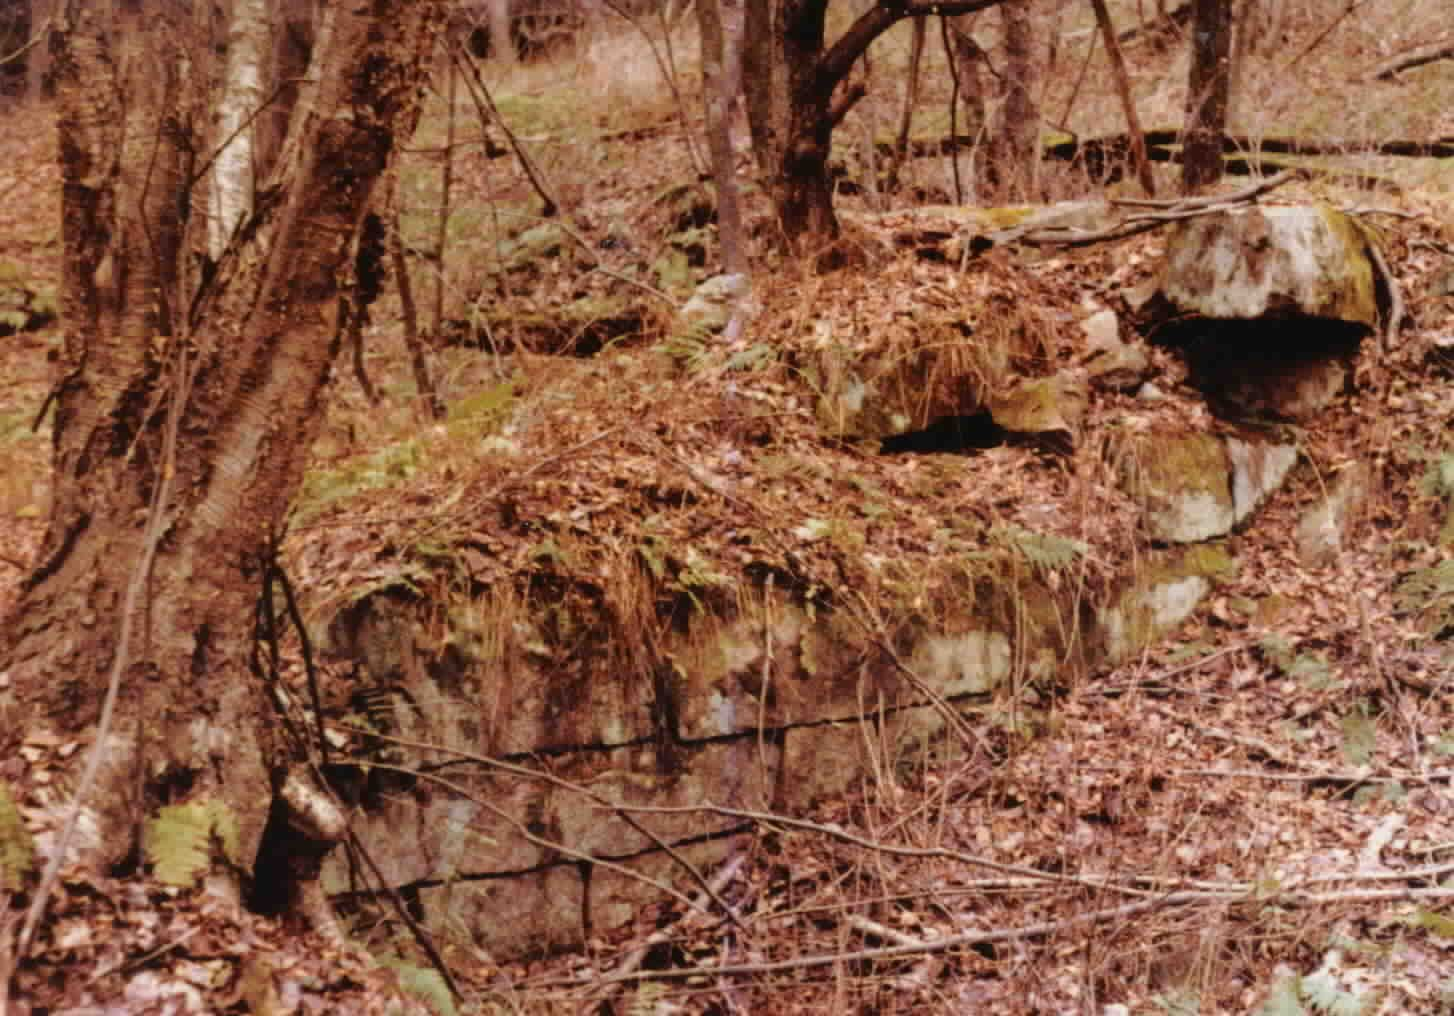 Licking Furnace, on Licking Creek in Farmington Twp., Clarion Co., PA (east of Lickingville) http://r2parks.net/Licking.html